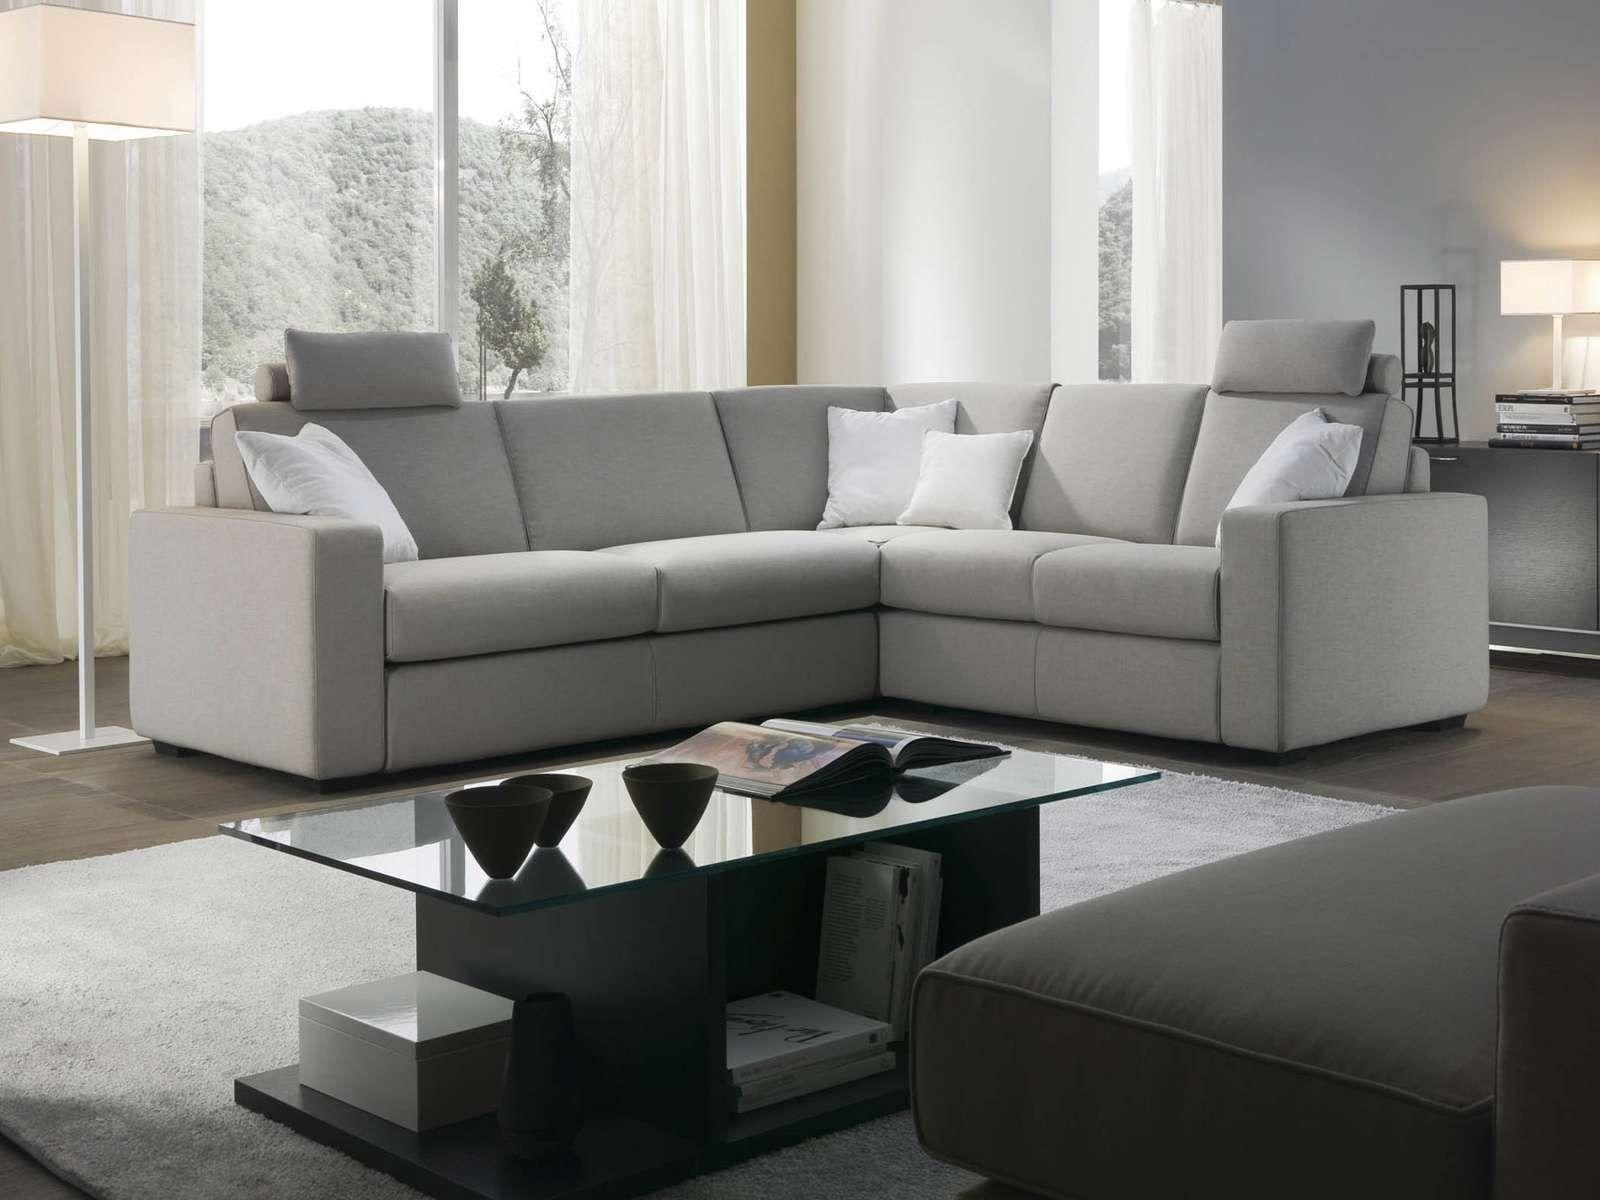 20 collection of divani chateau d 39 ax leather sofas sofa for Divani chatodax